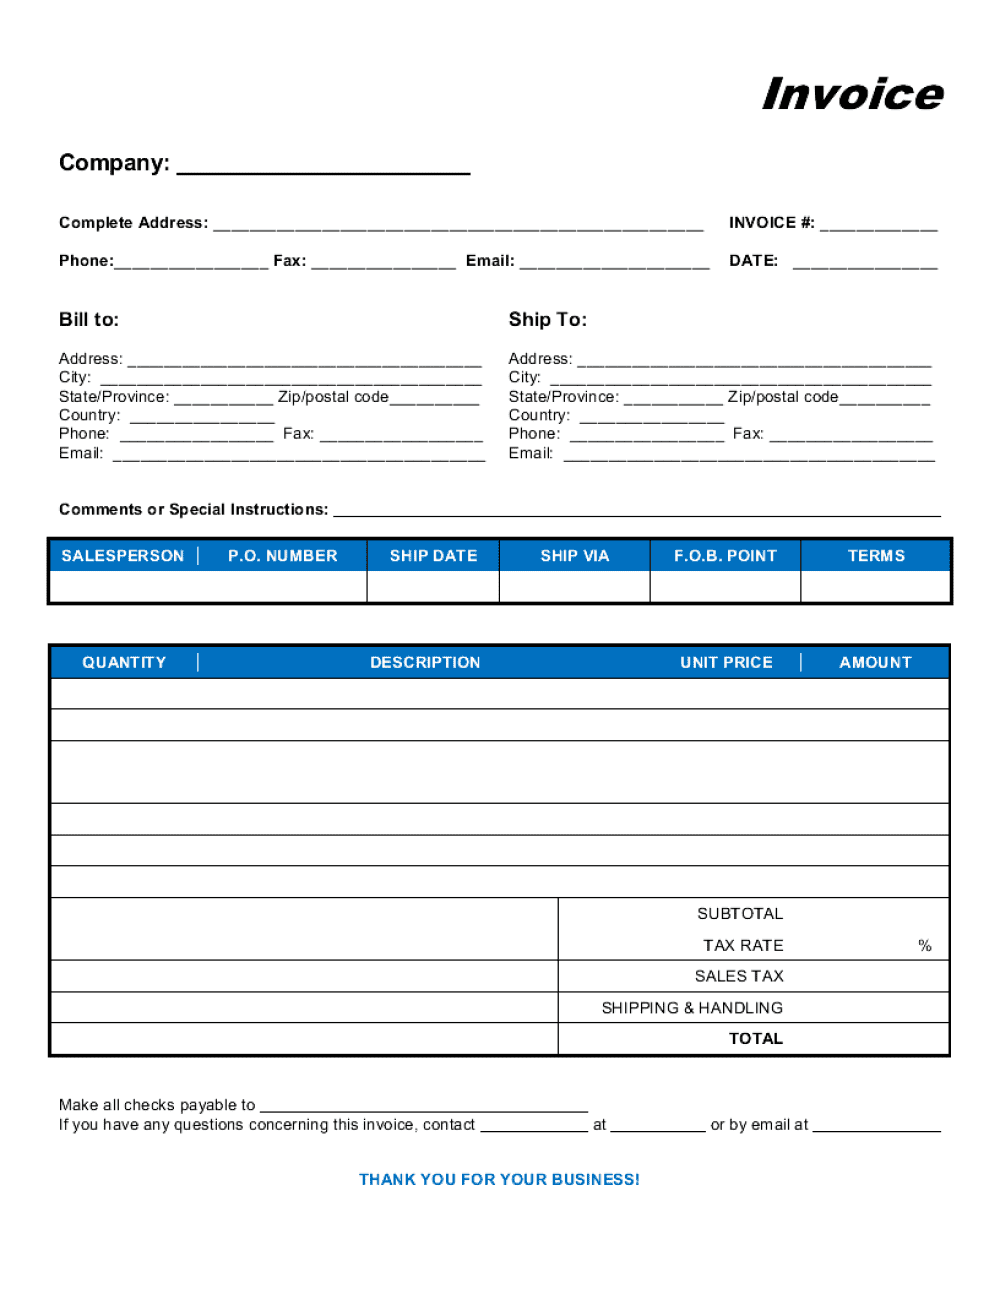 Business-in-a-Box's Commercial Sales Invoice Template